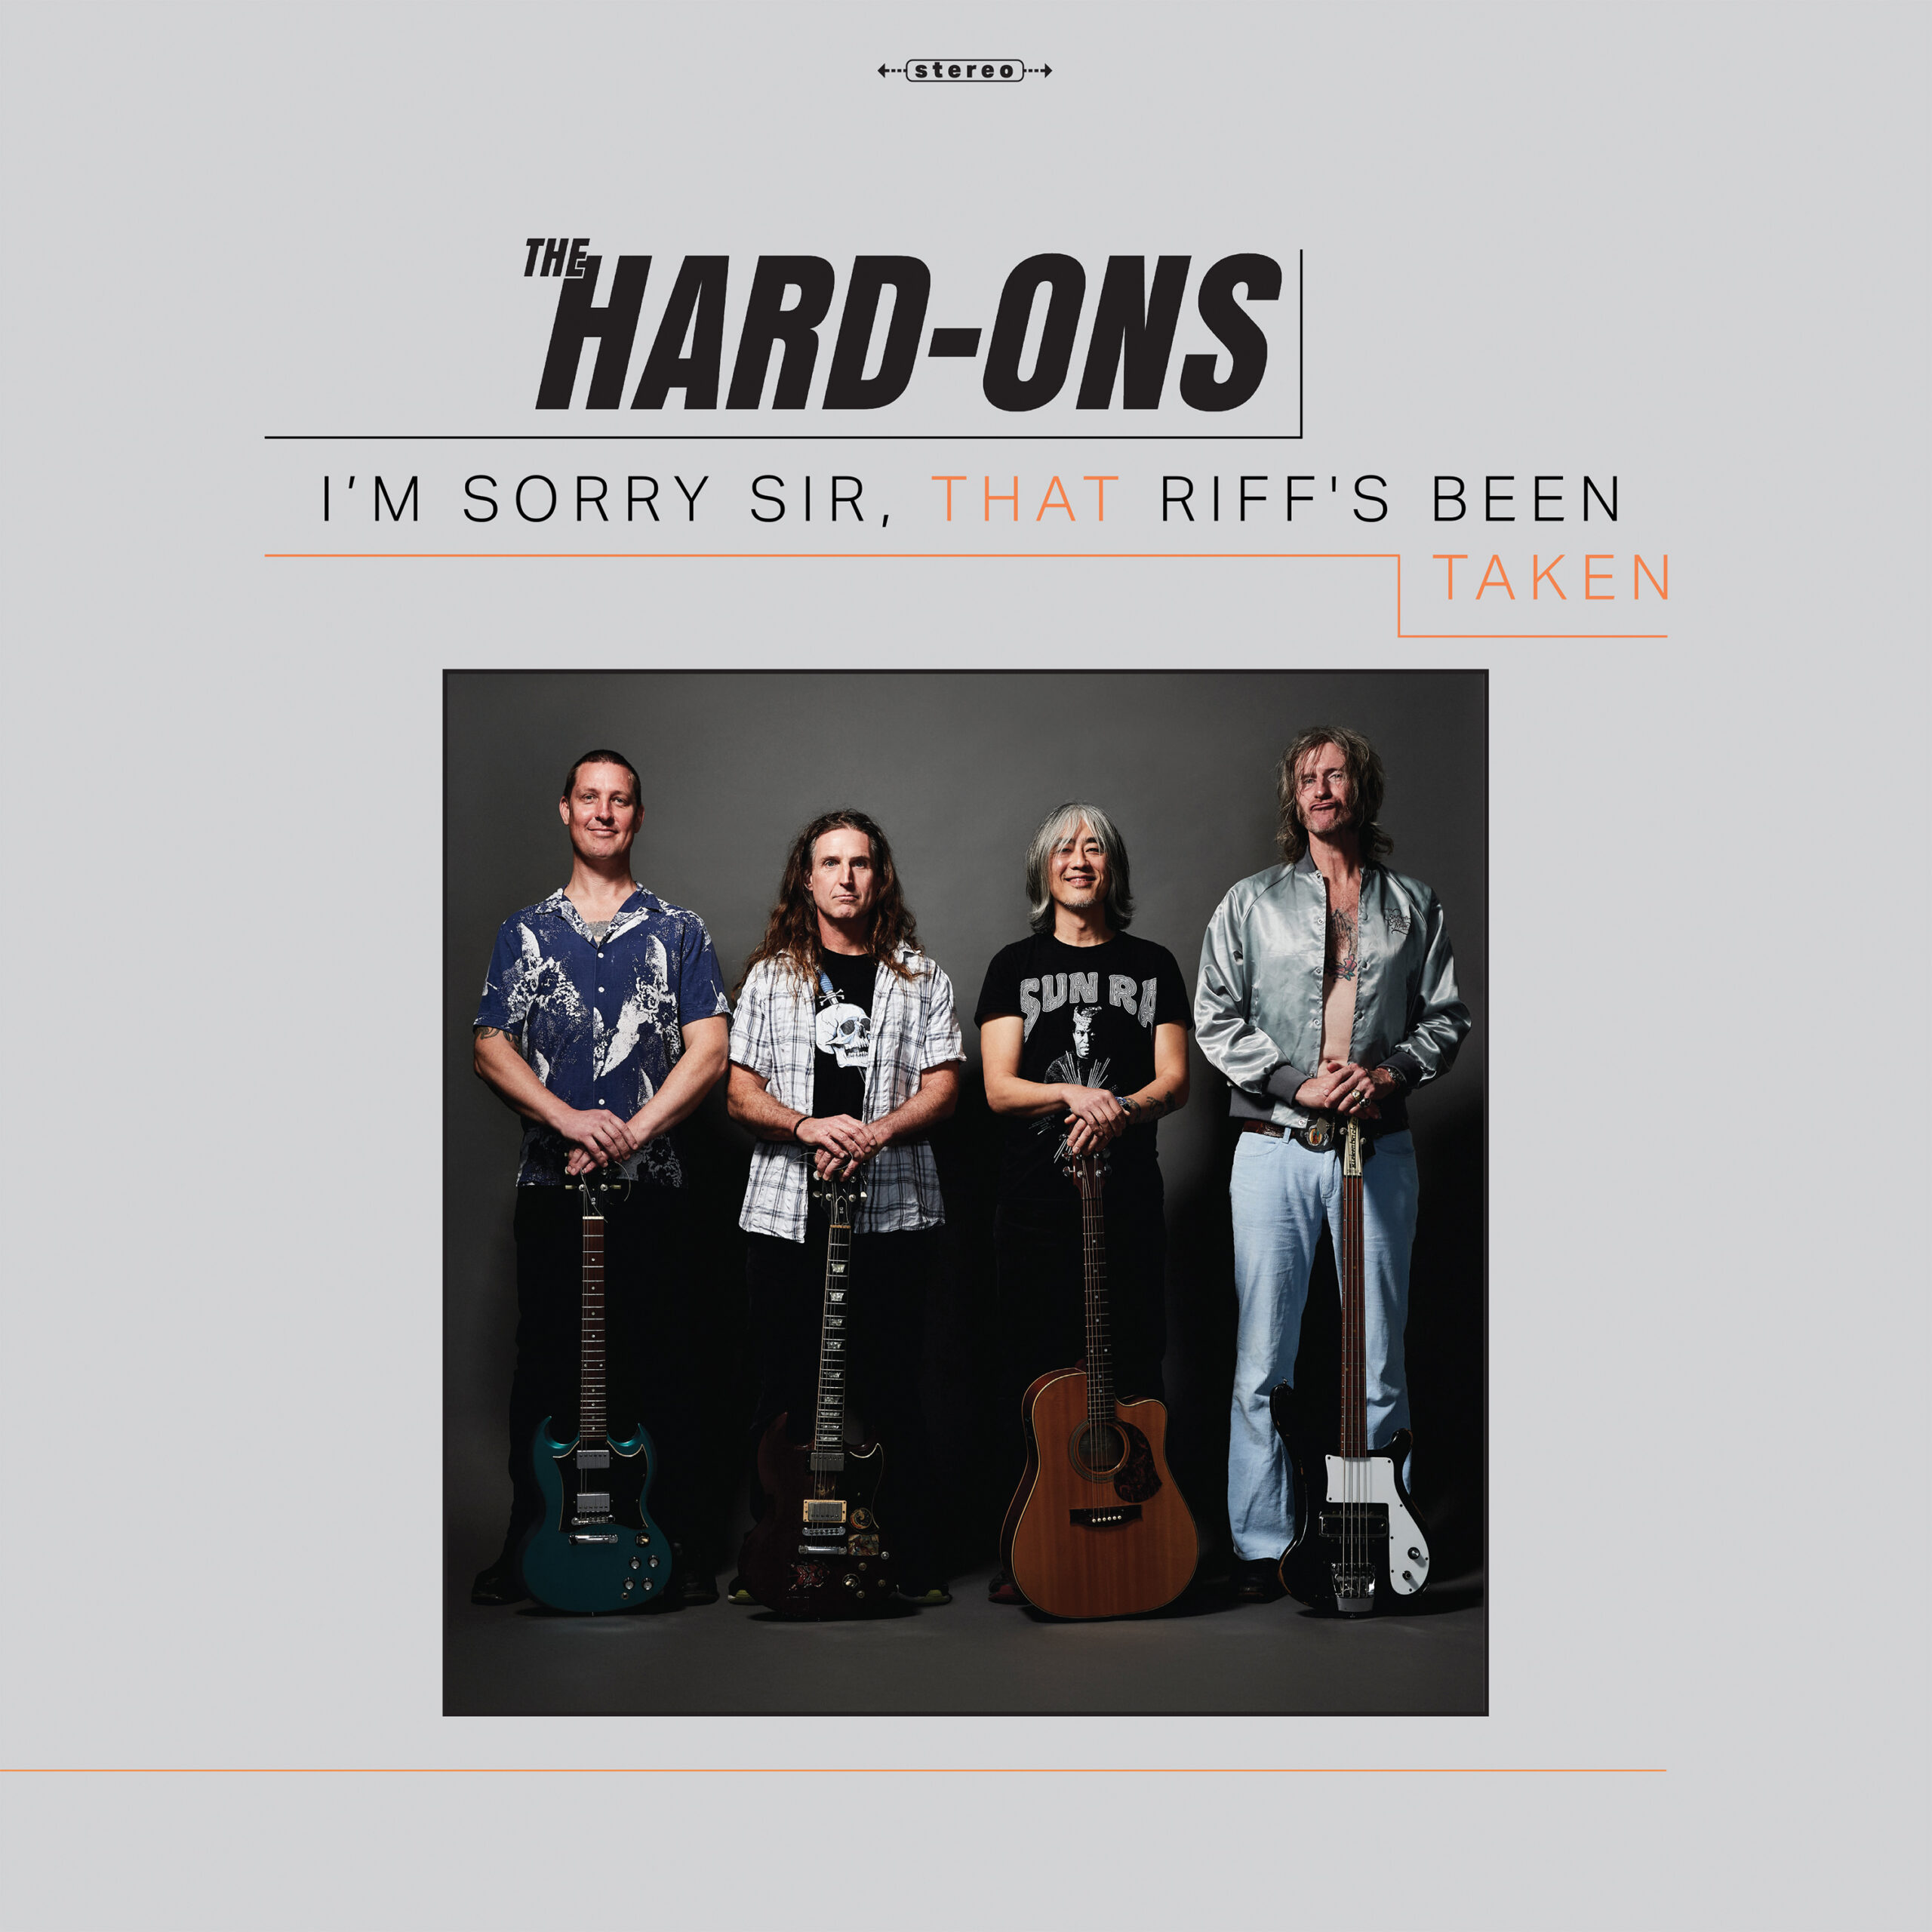 The Hard-Ons - I'm Sorry Sir, That Riff's Been Taken